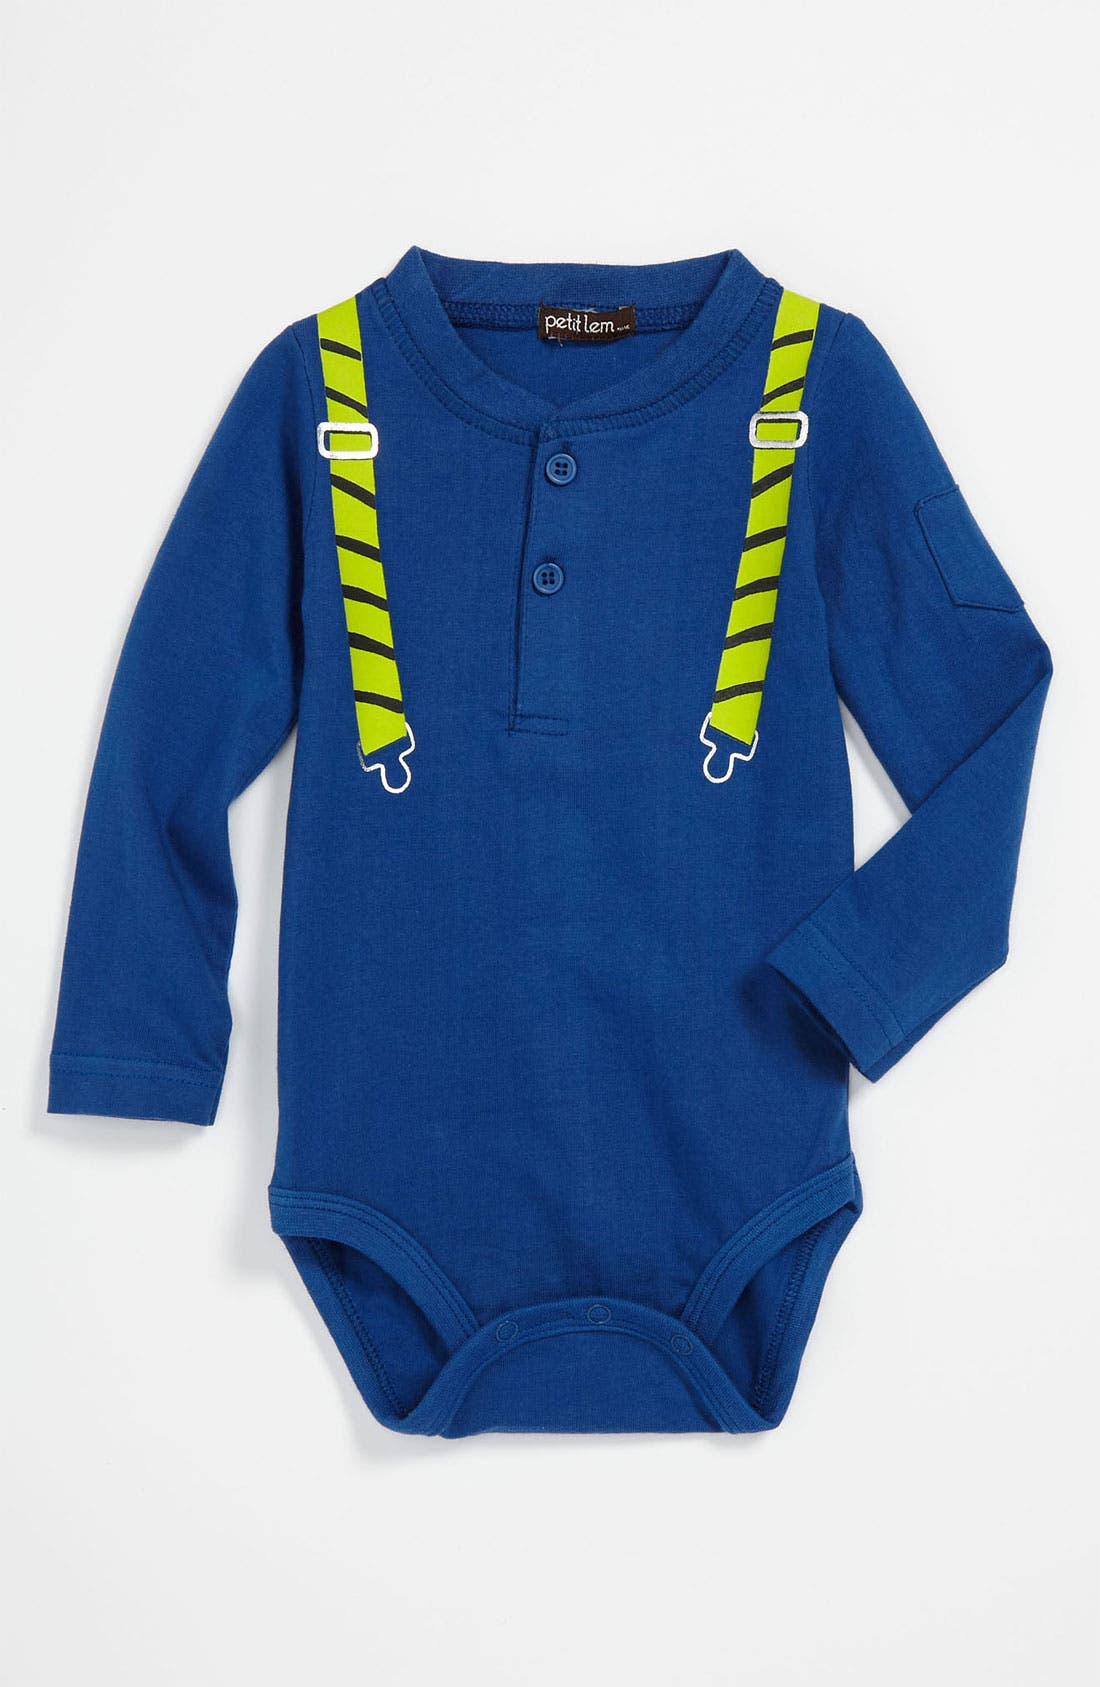 Alternate Image 1 Selected - Petit Lem Bodysuit (Infant)